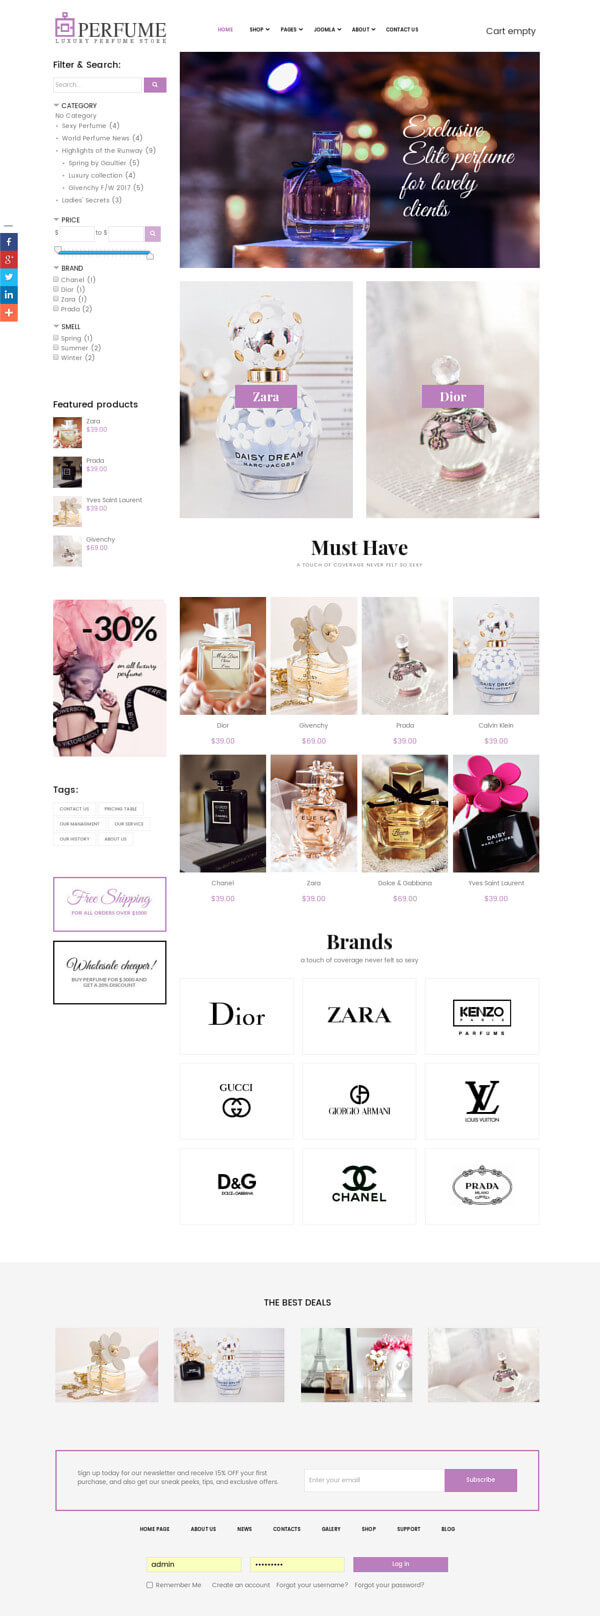 Perfume - Joomla eCommerce template, for create perfume store website